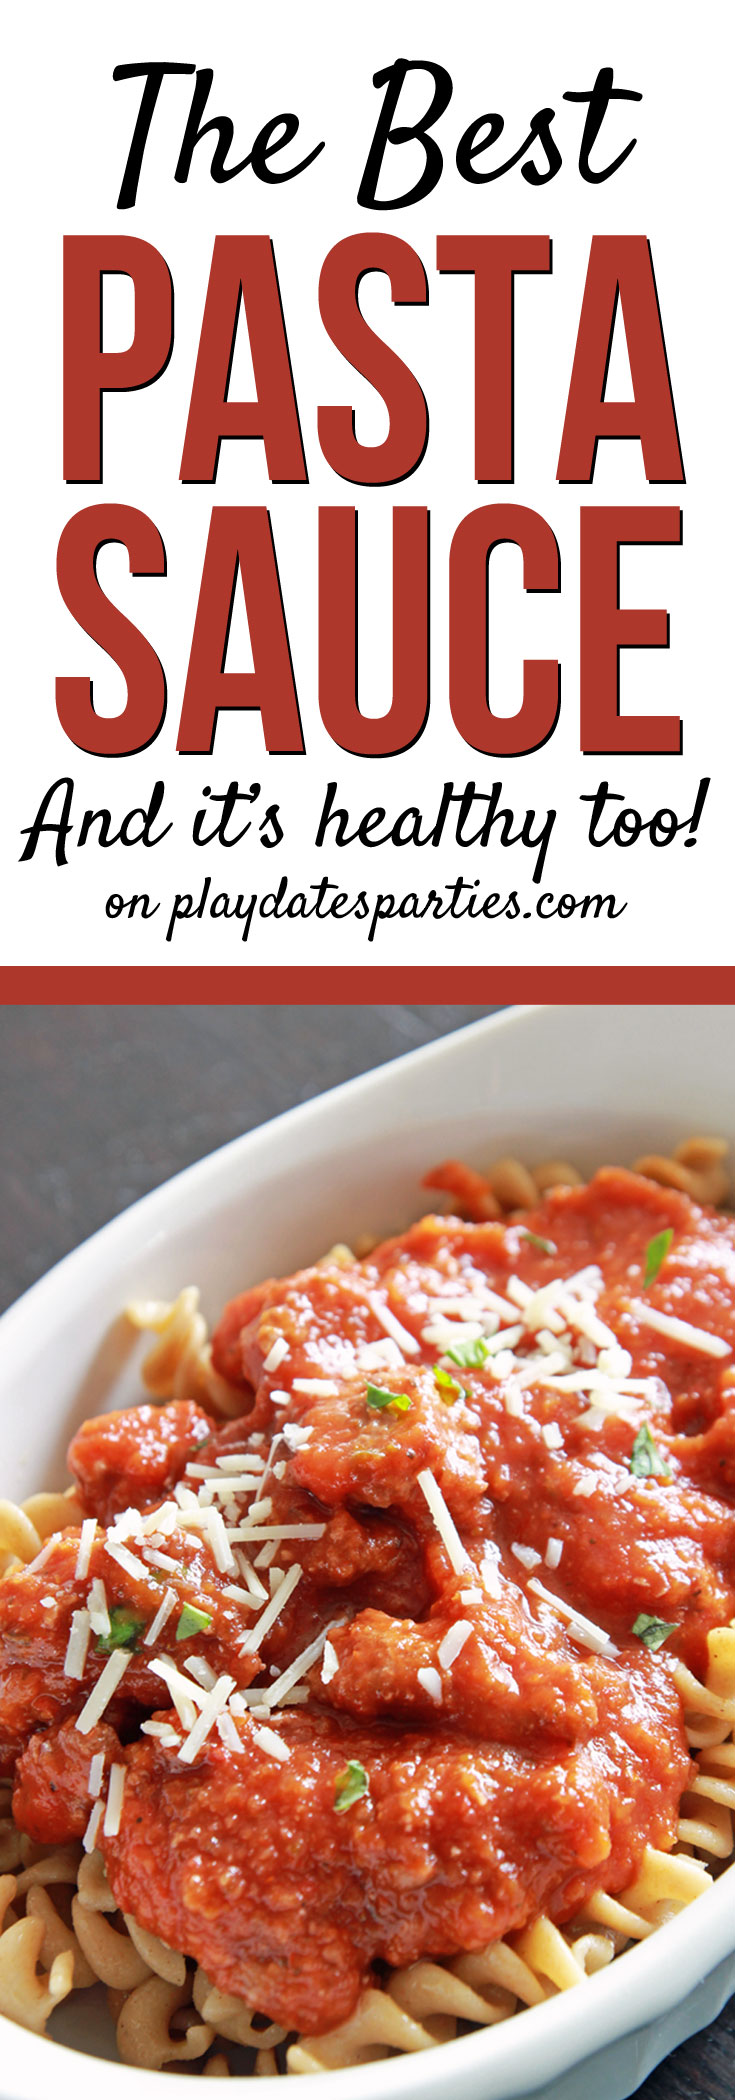 Looking for a healthier way to eat your pasta? Head over to playdatesparties.com to find the secret ingredient and recipe for an incredibly healthy pasta sauce that everyone will love! #healthyrecipes #pasta #kidfriendlyrecipes #recipe